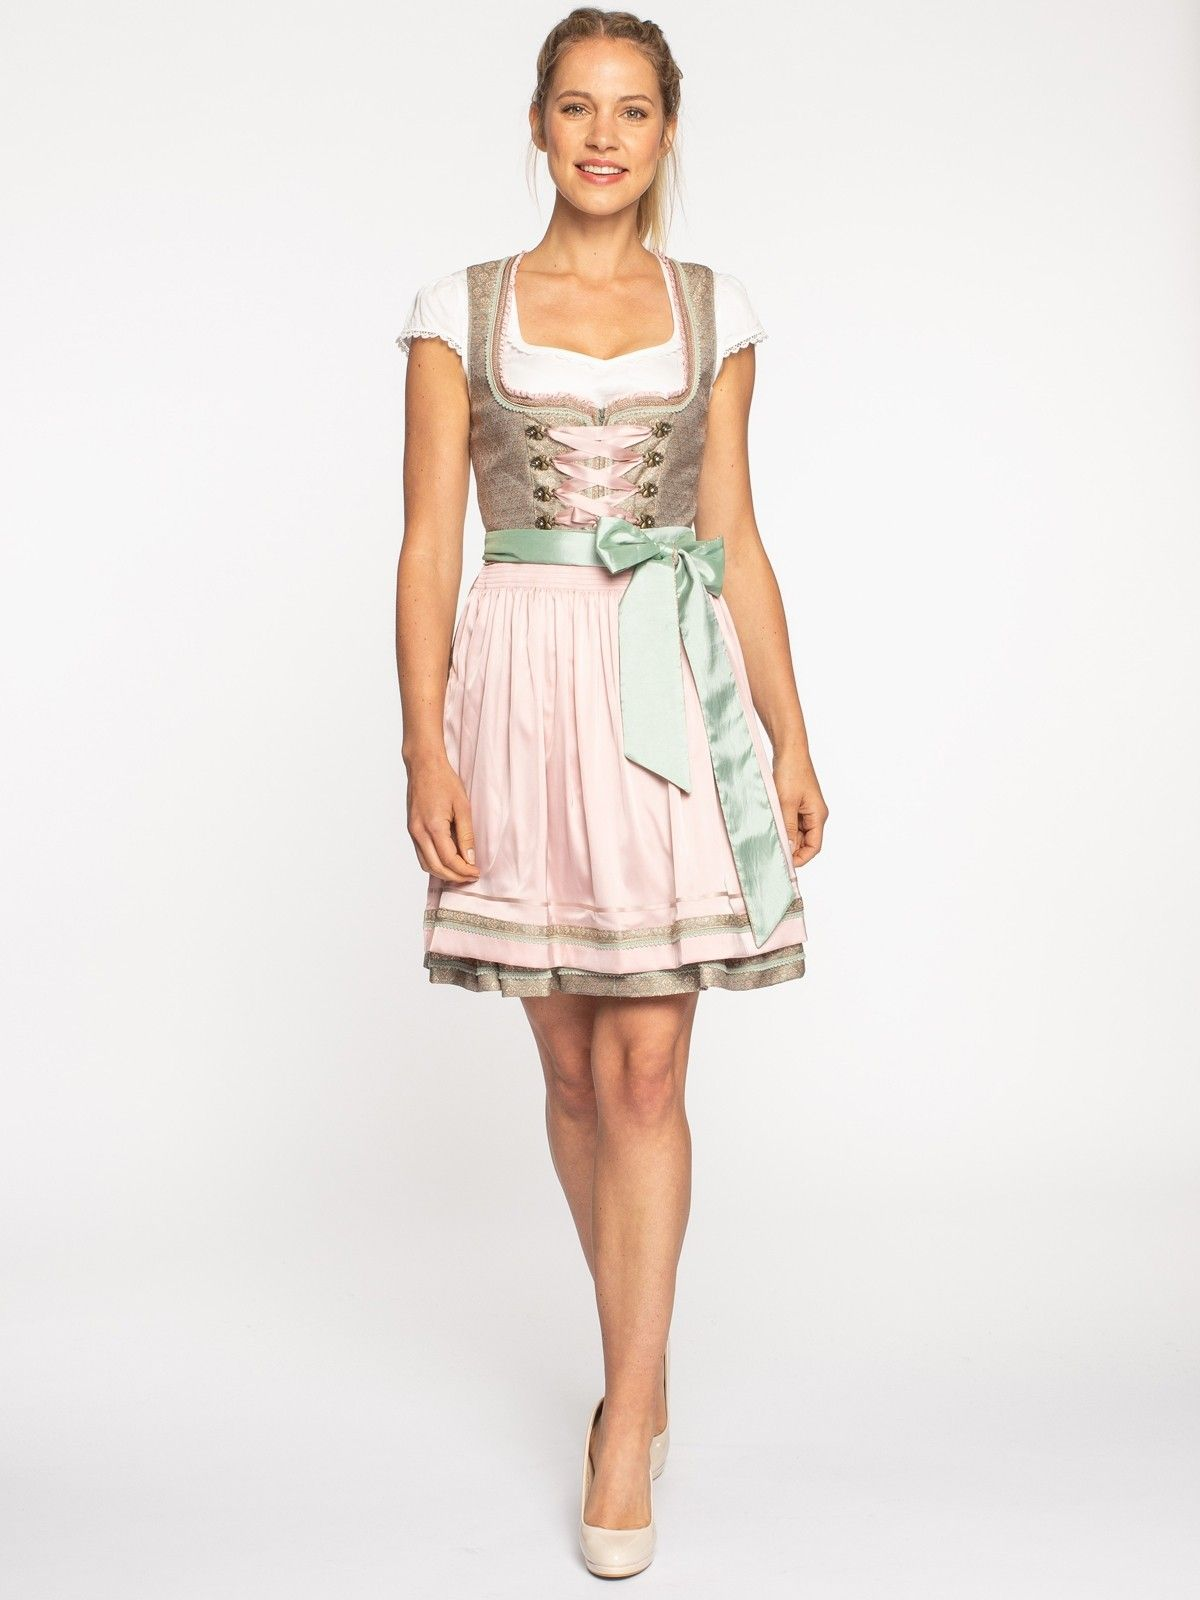 KRüGER DIRNDL Dirndl in Mintgrün DARLING in 2020